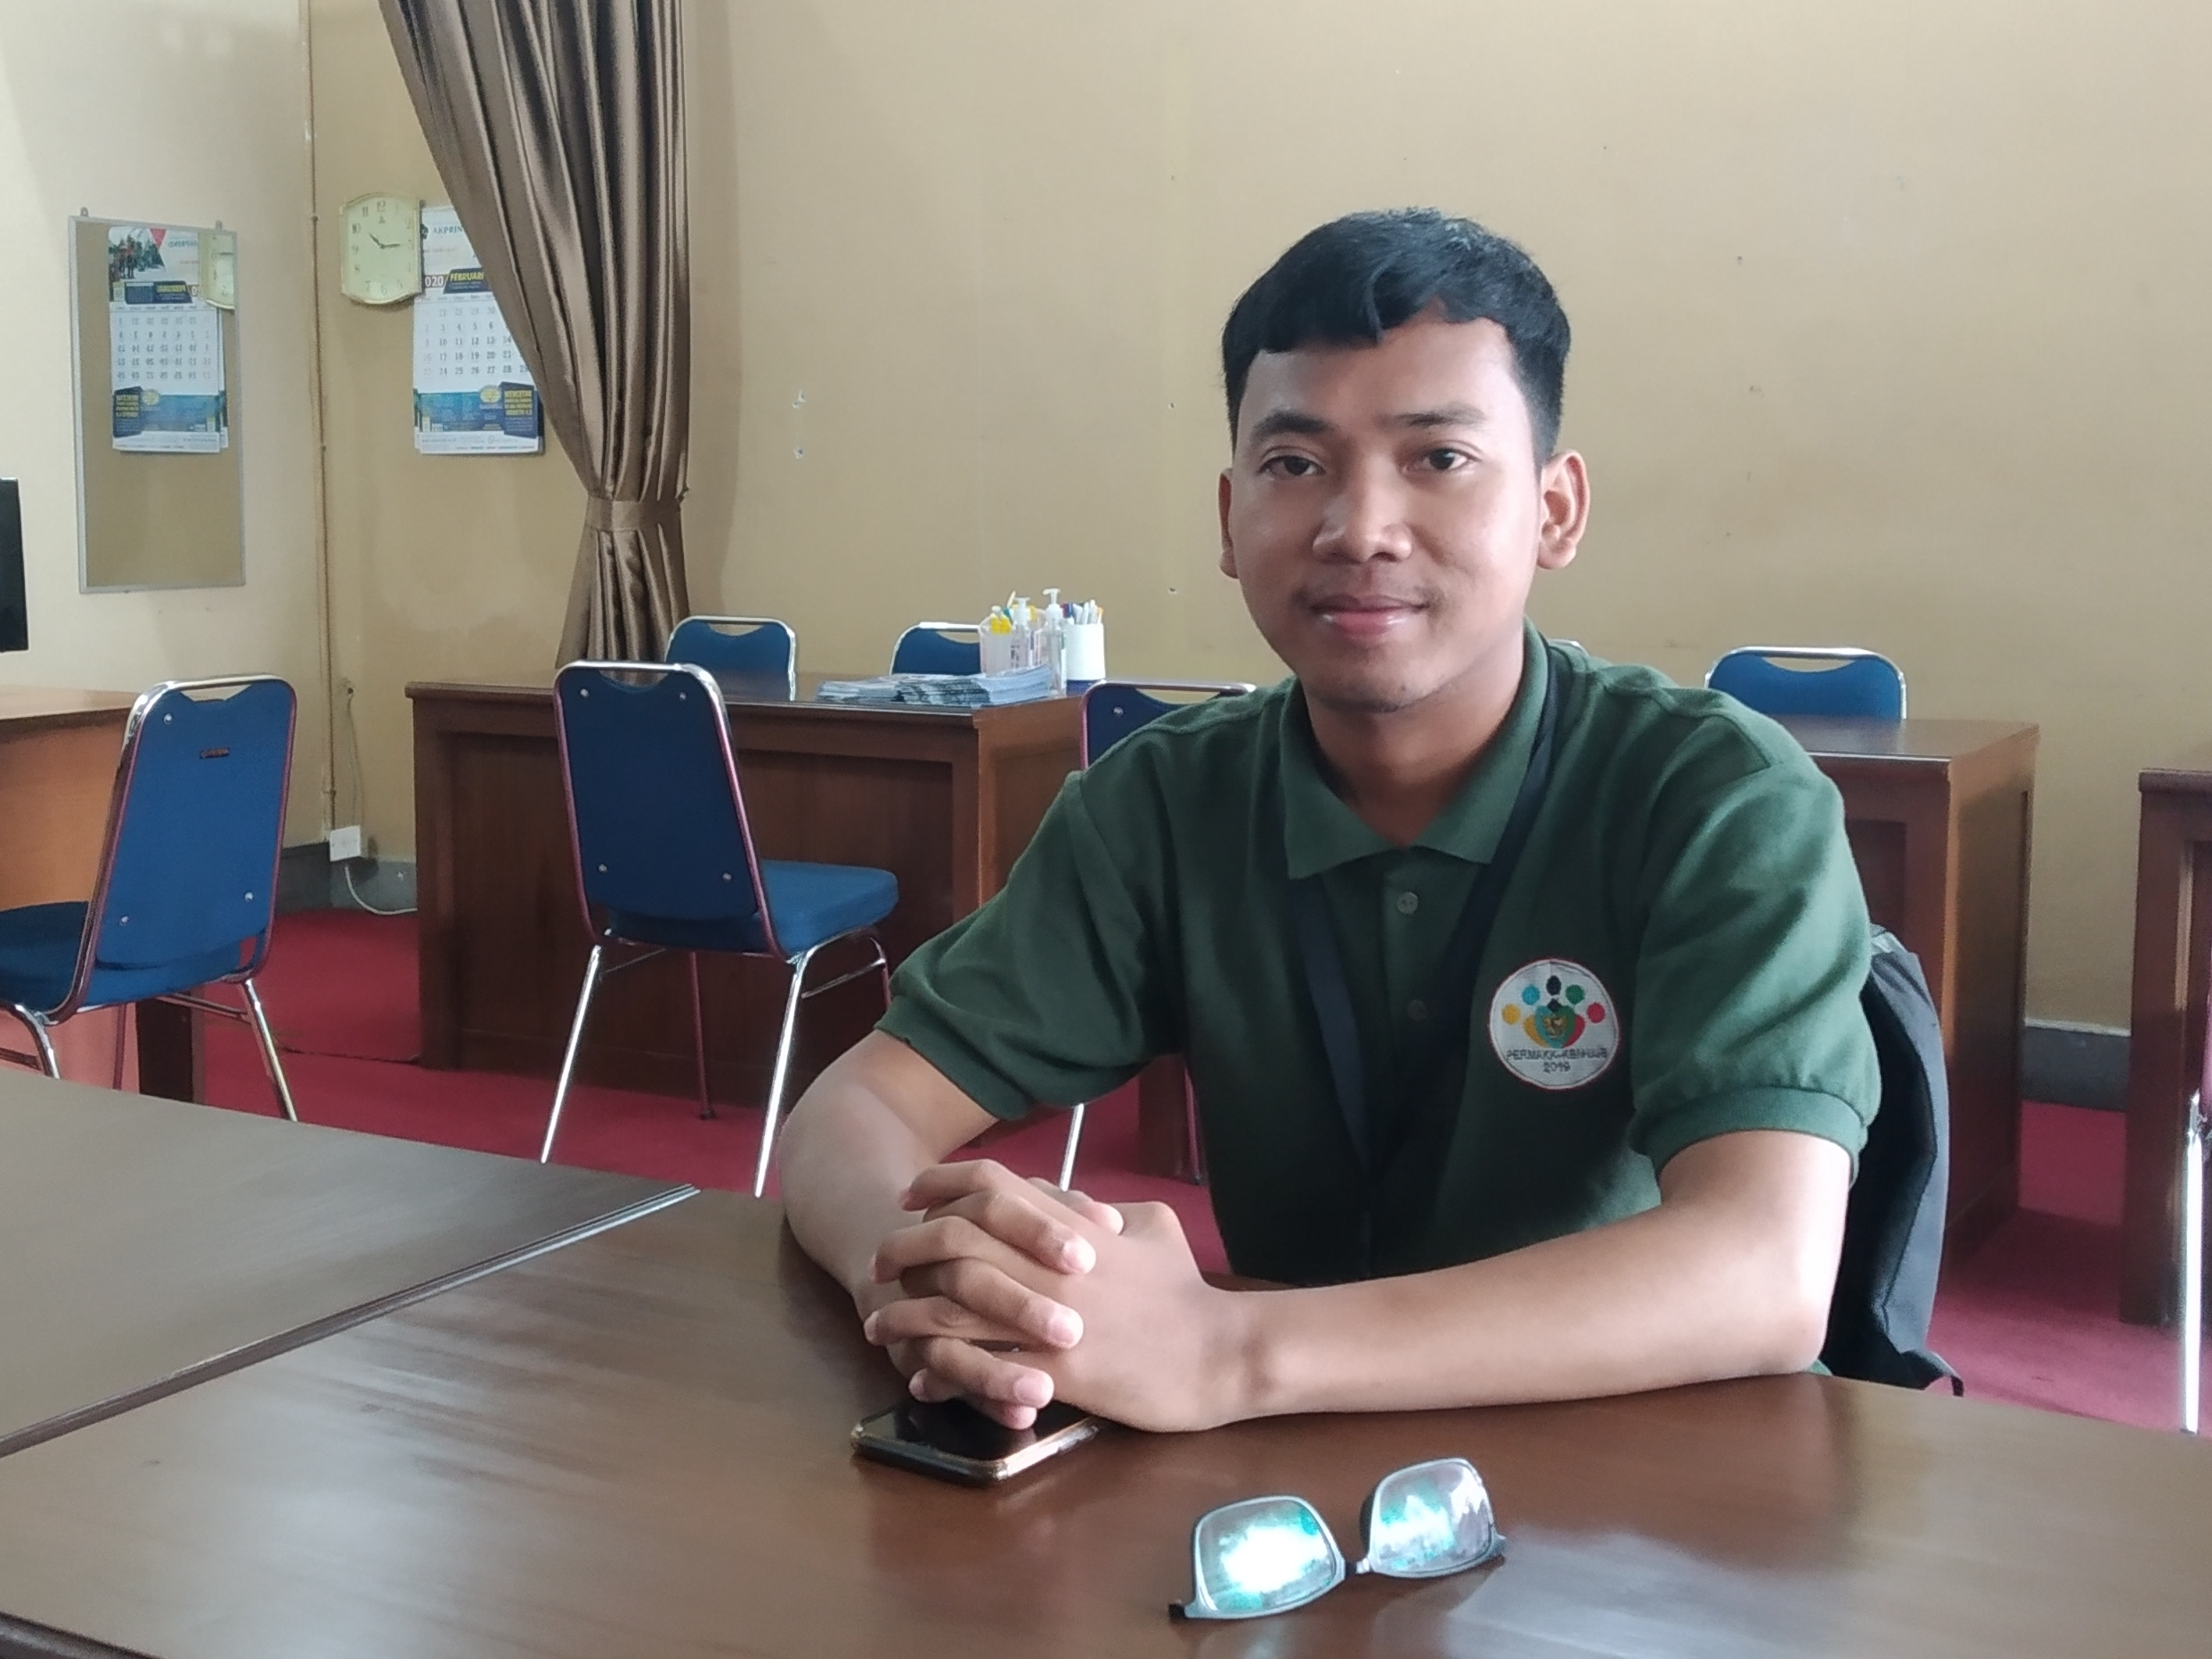 Hawari Al Rabbani wakili Indonesia di Asia Youth International Model United Nation 2020